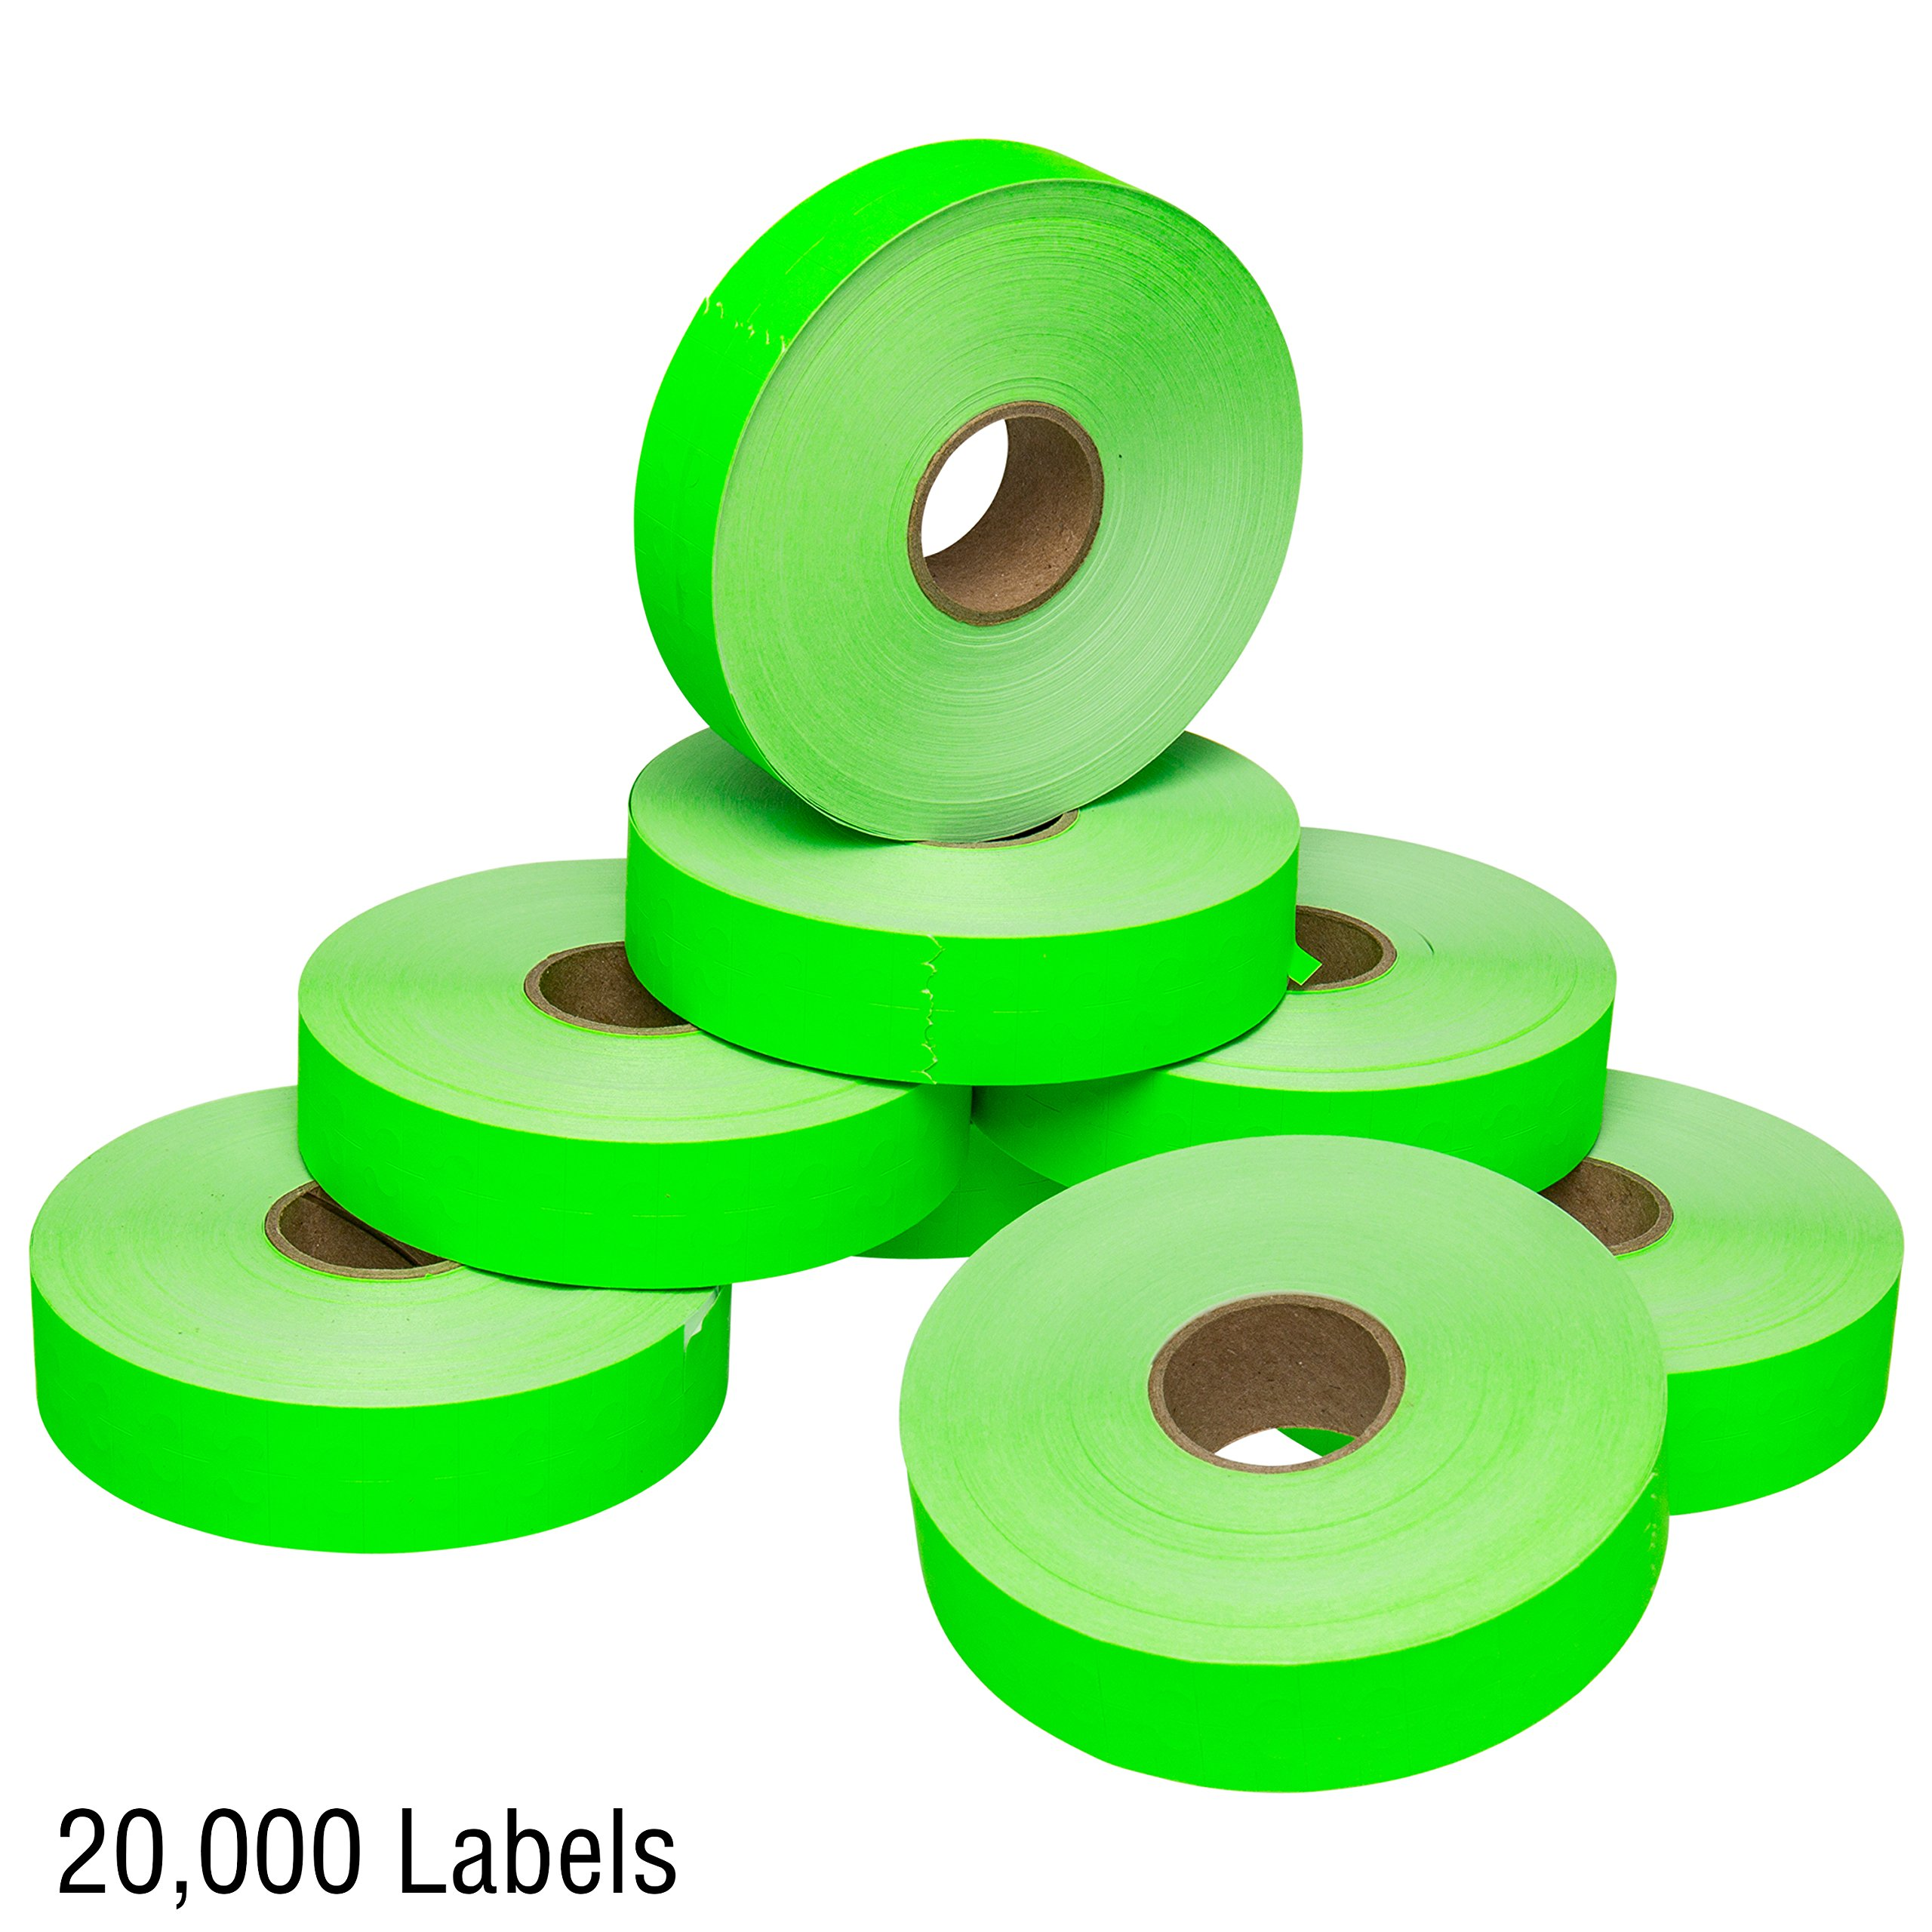 Flou. Green Pricing Labels for Monarch 1131 Price Gun - 1 Sleeve, 20,000 Price Gun Labels - with Bonus Ink Roll by Perco (Image #6)